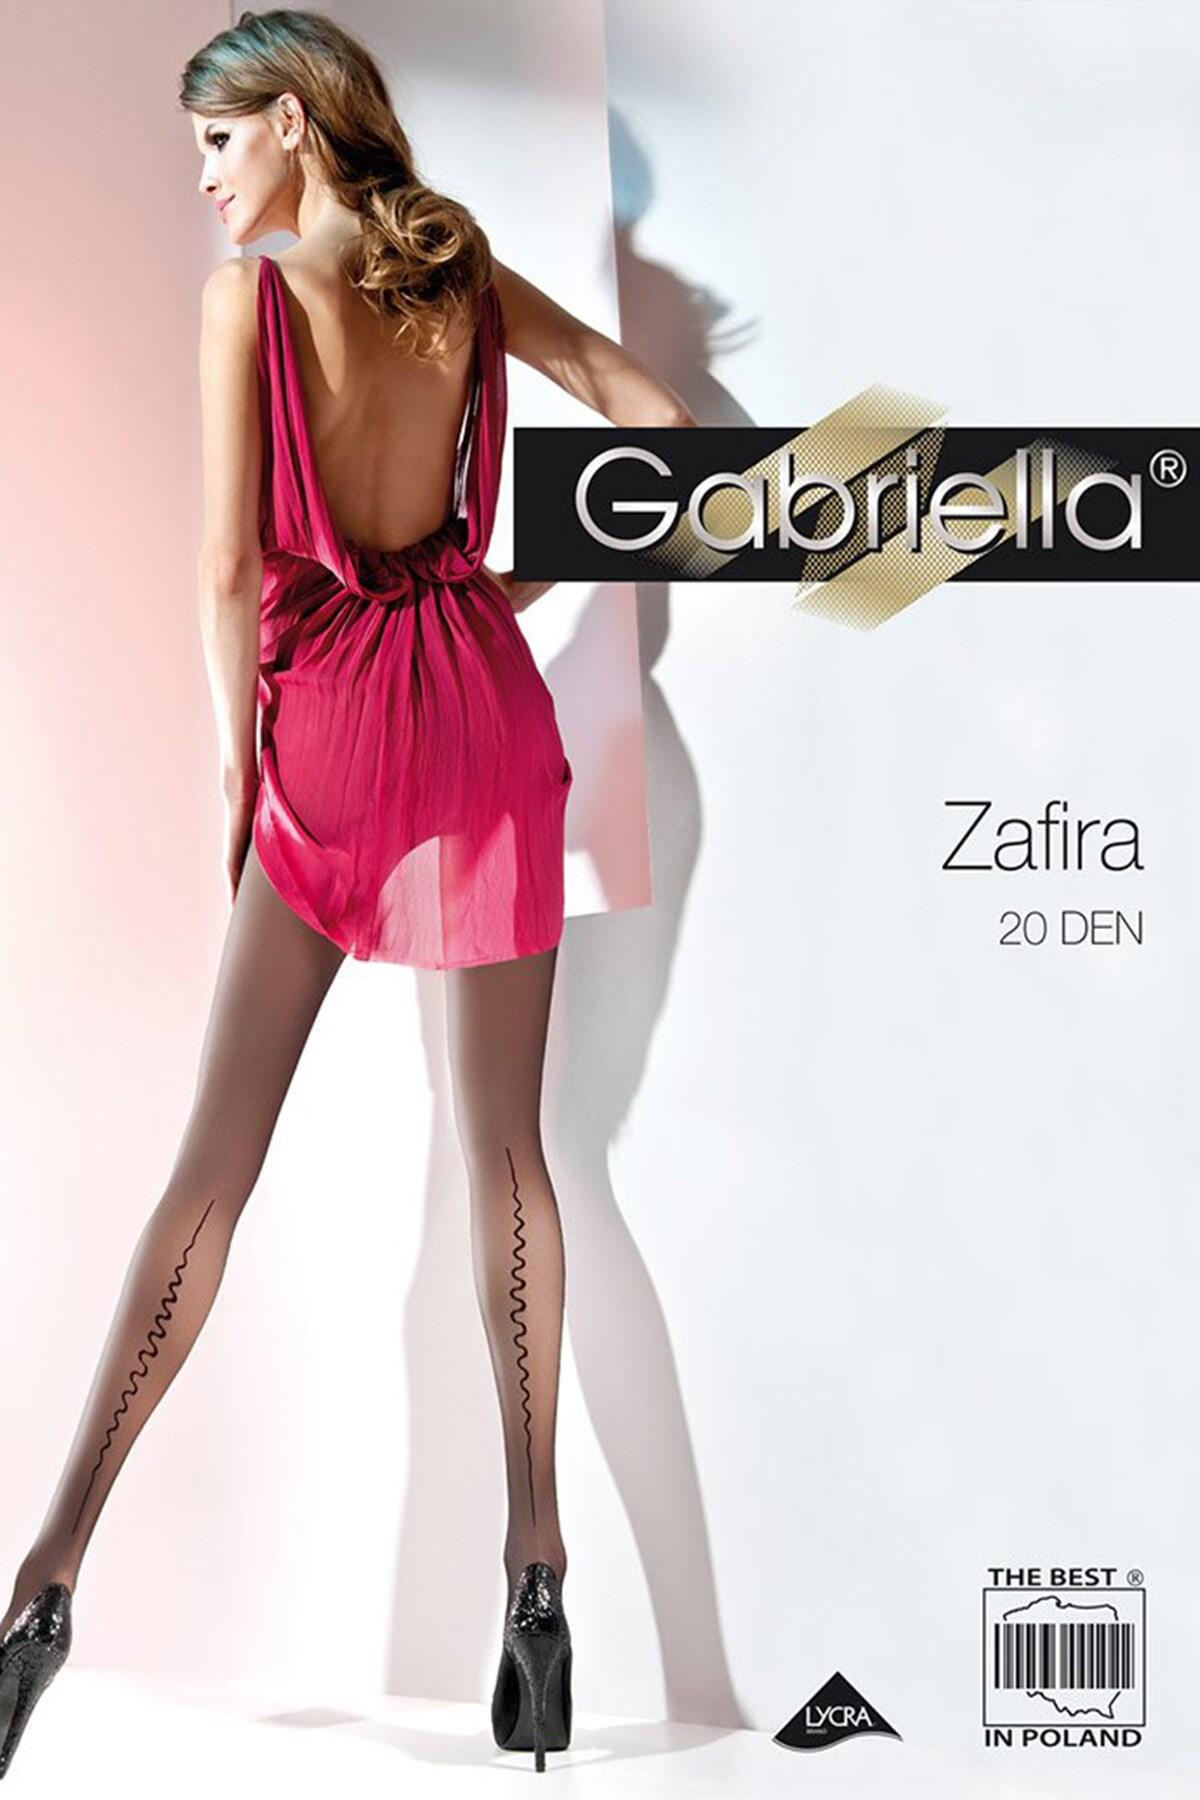 Gabriella Zafira 20 Denier Patterned Tights  - Black